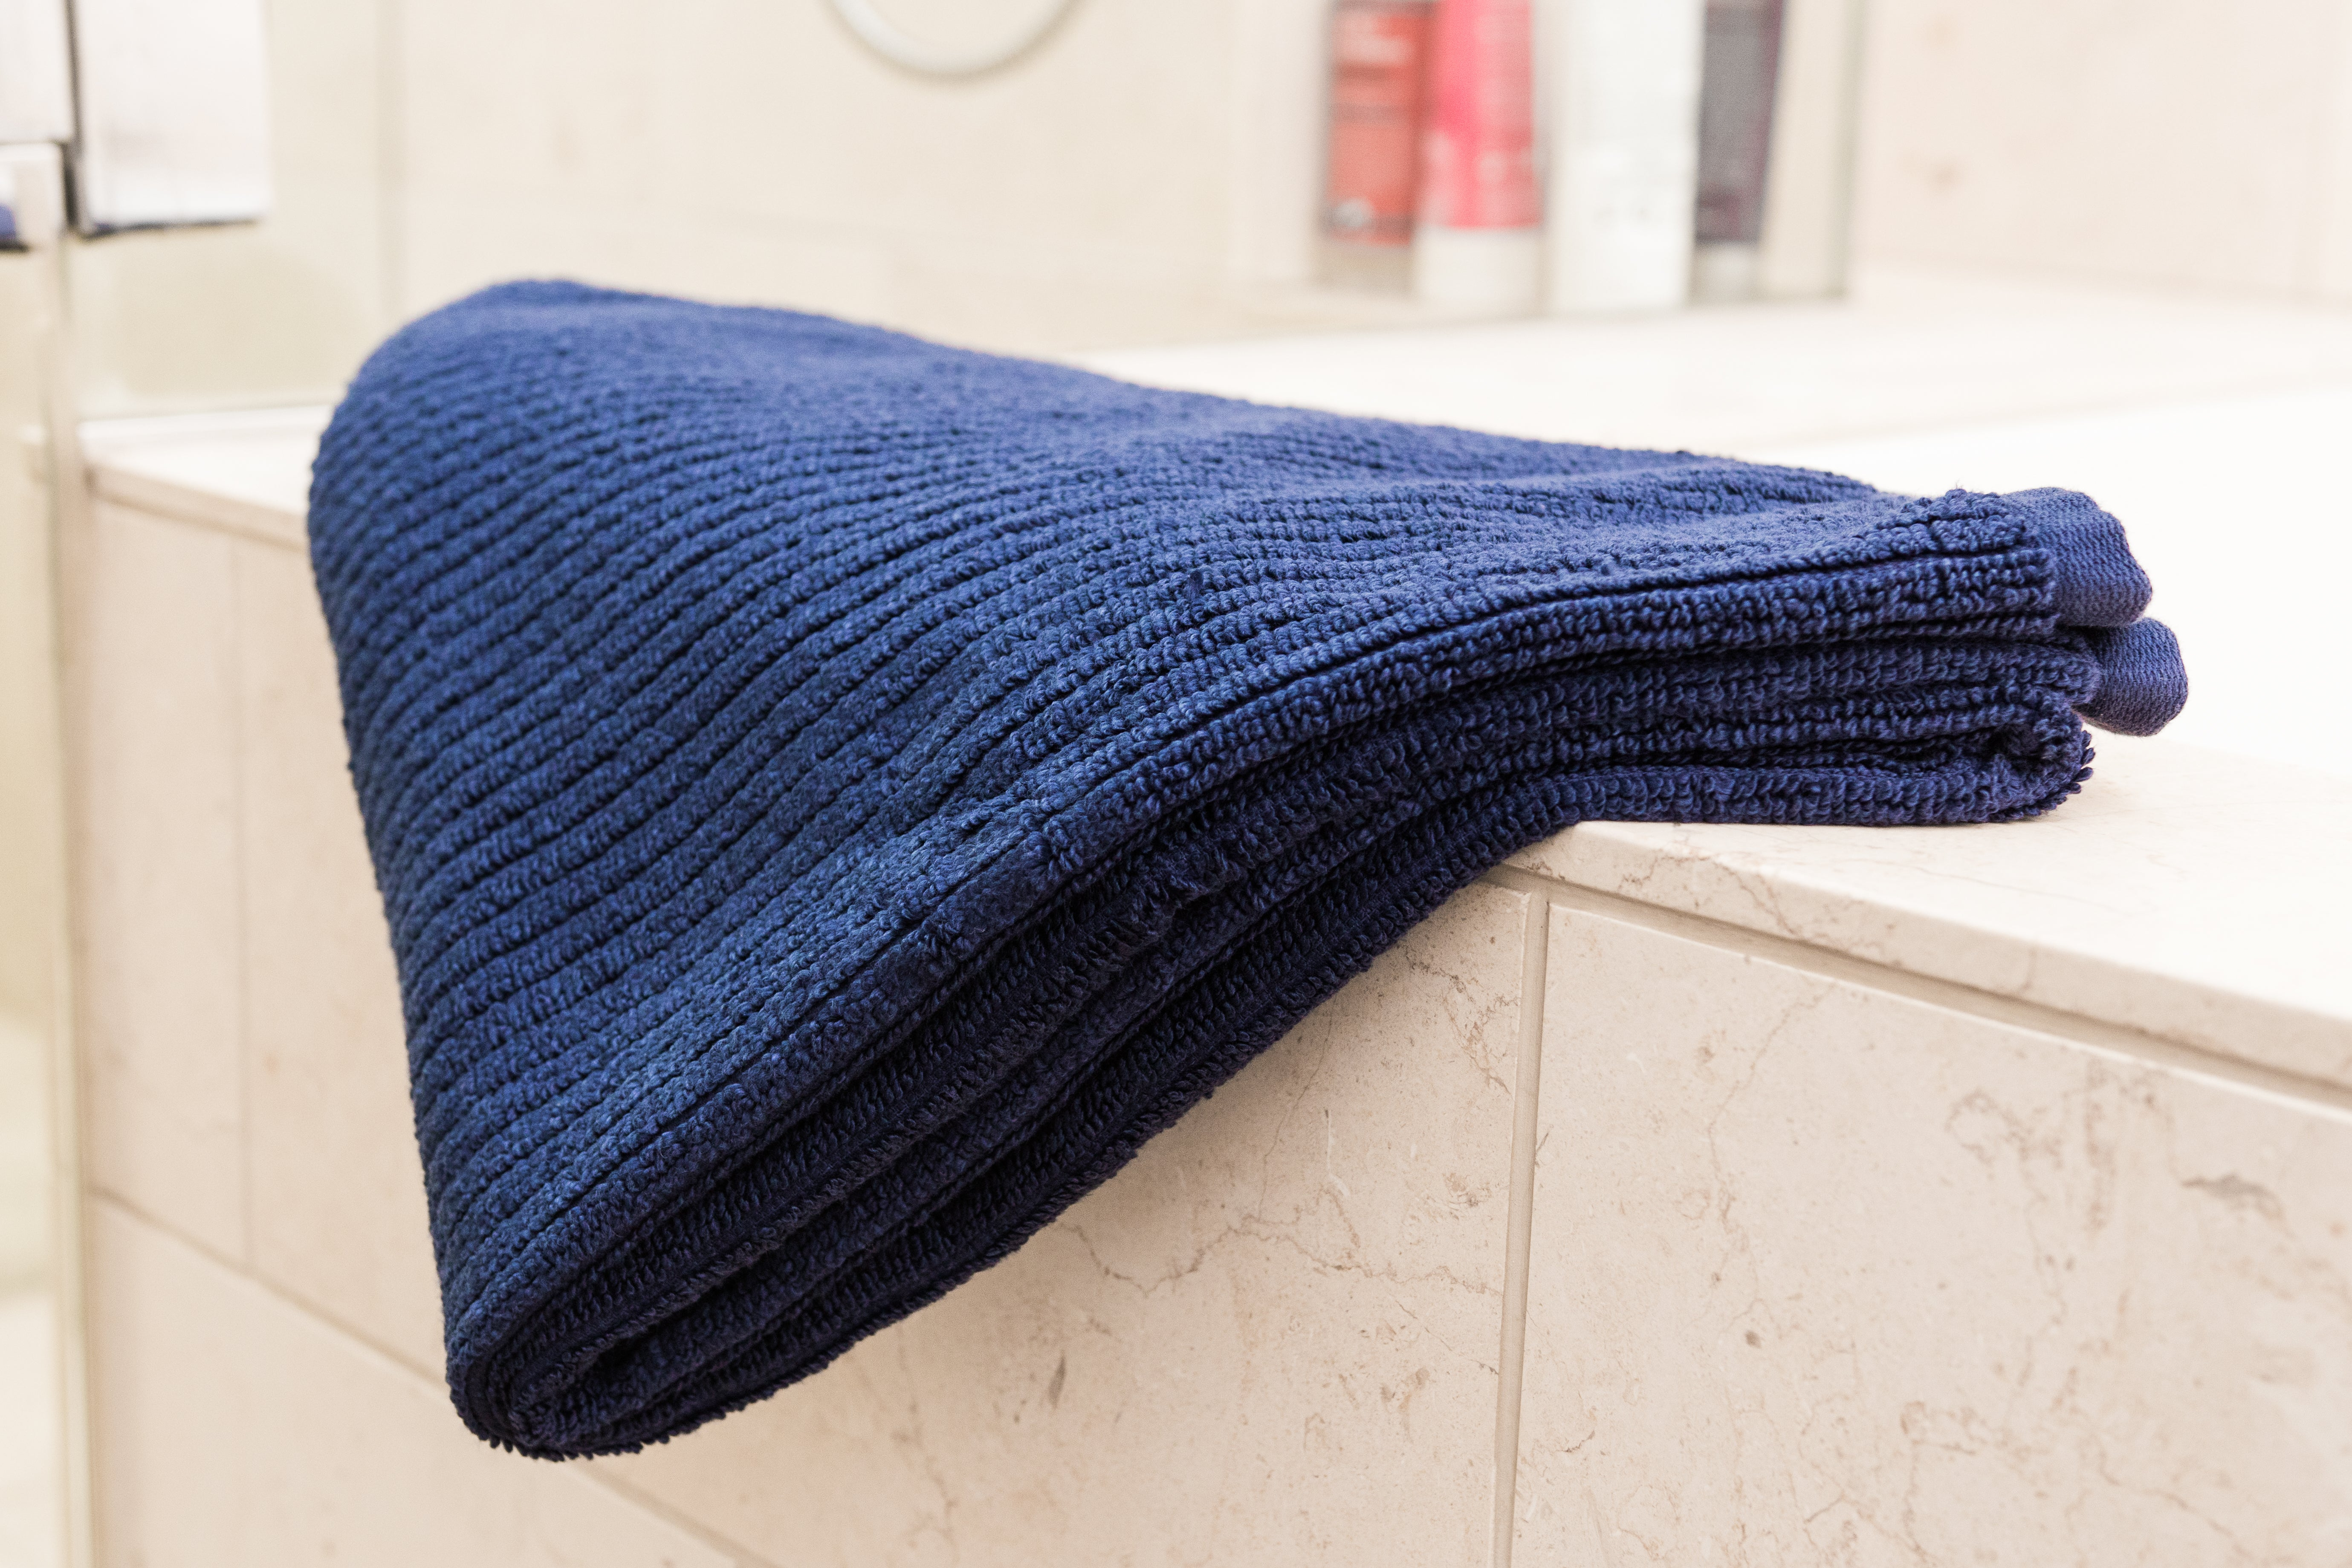 Bed Bath & Beyond Dri-Soft Plus Bath Towel